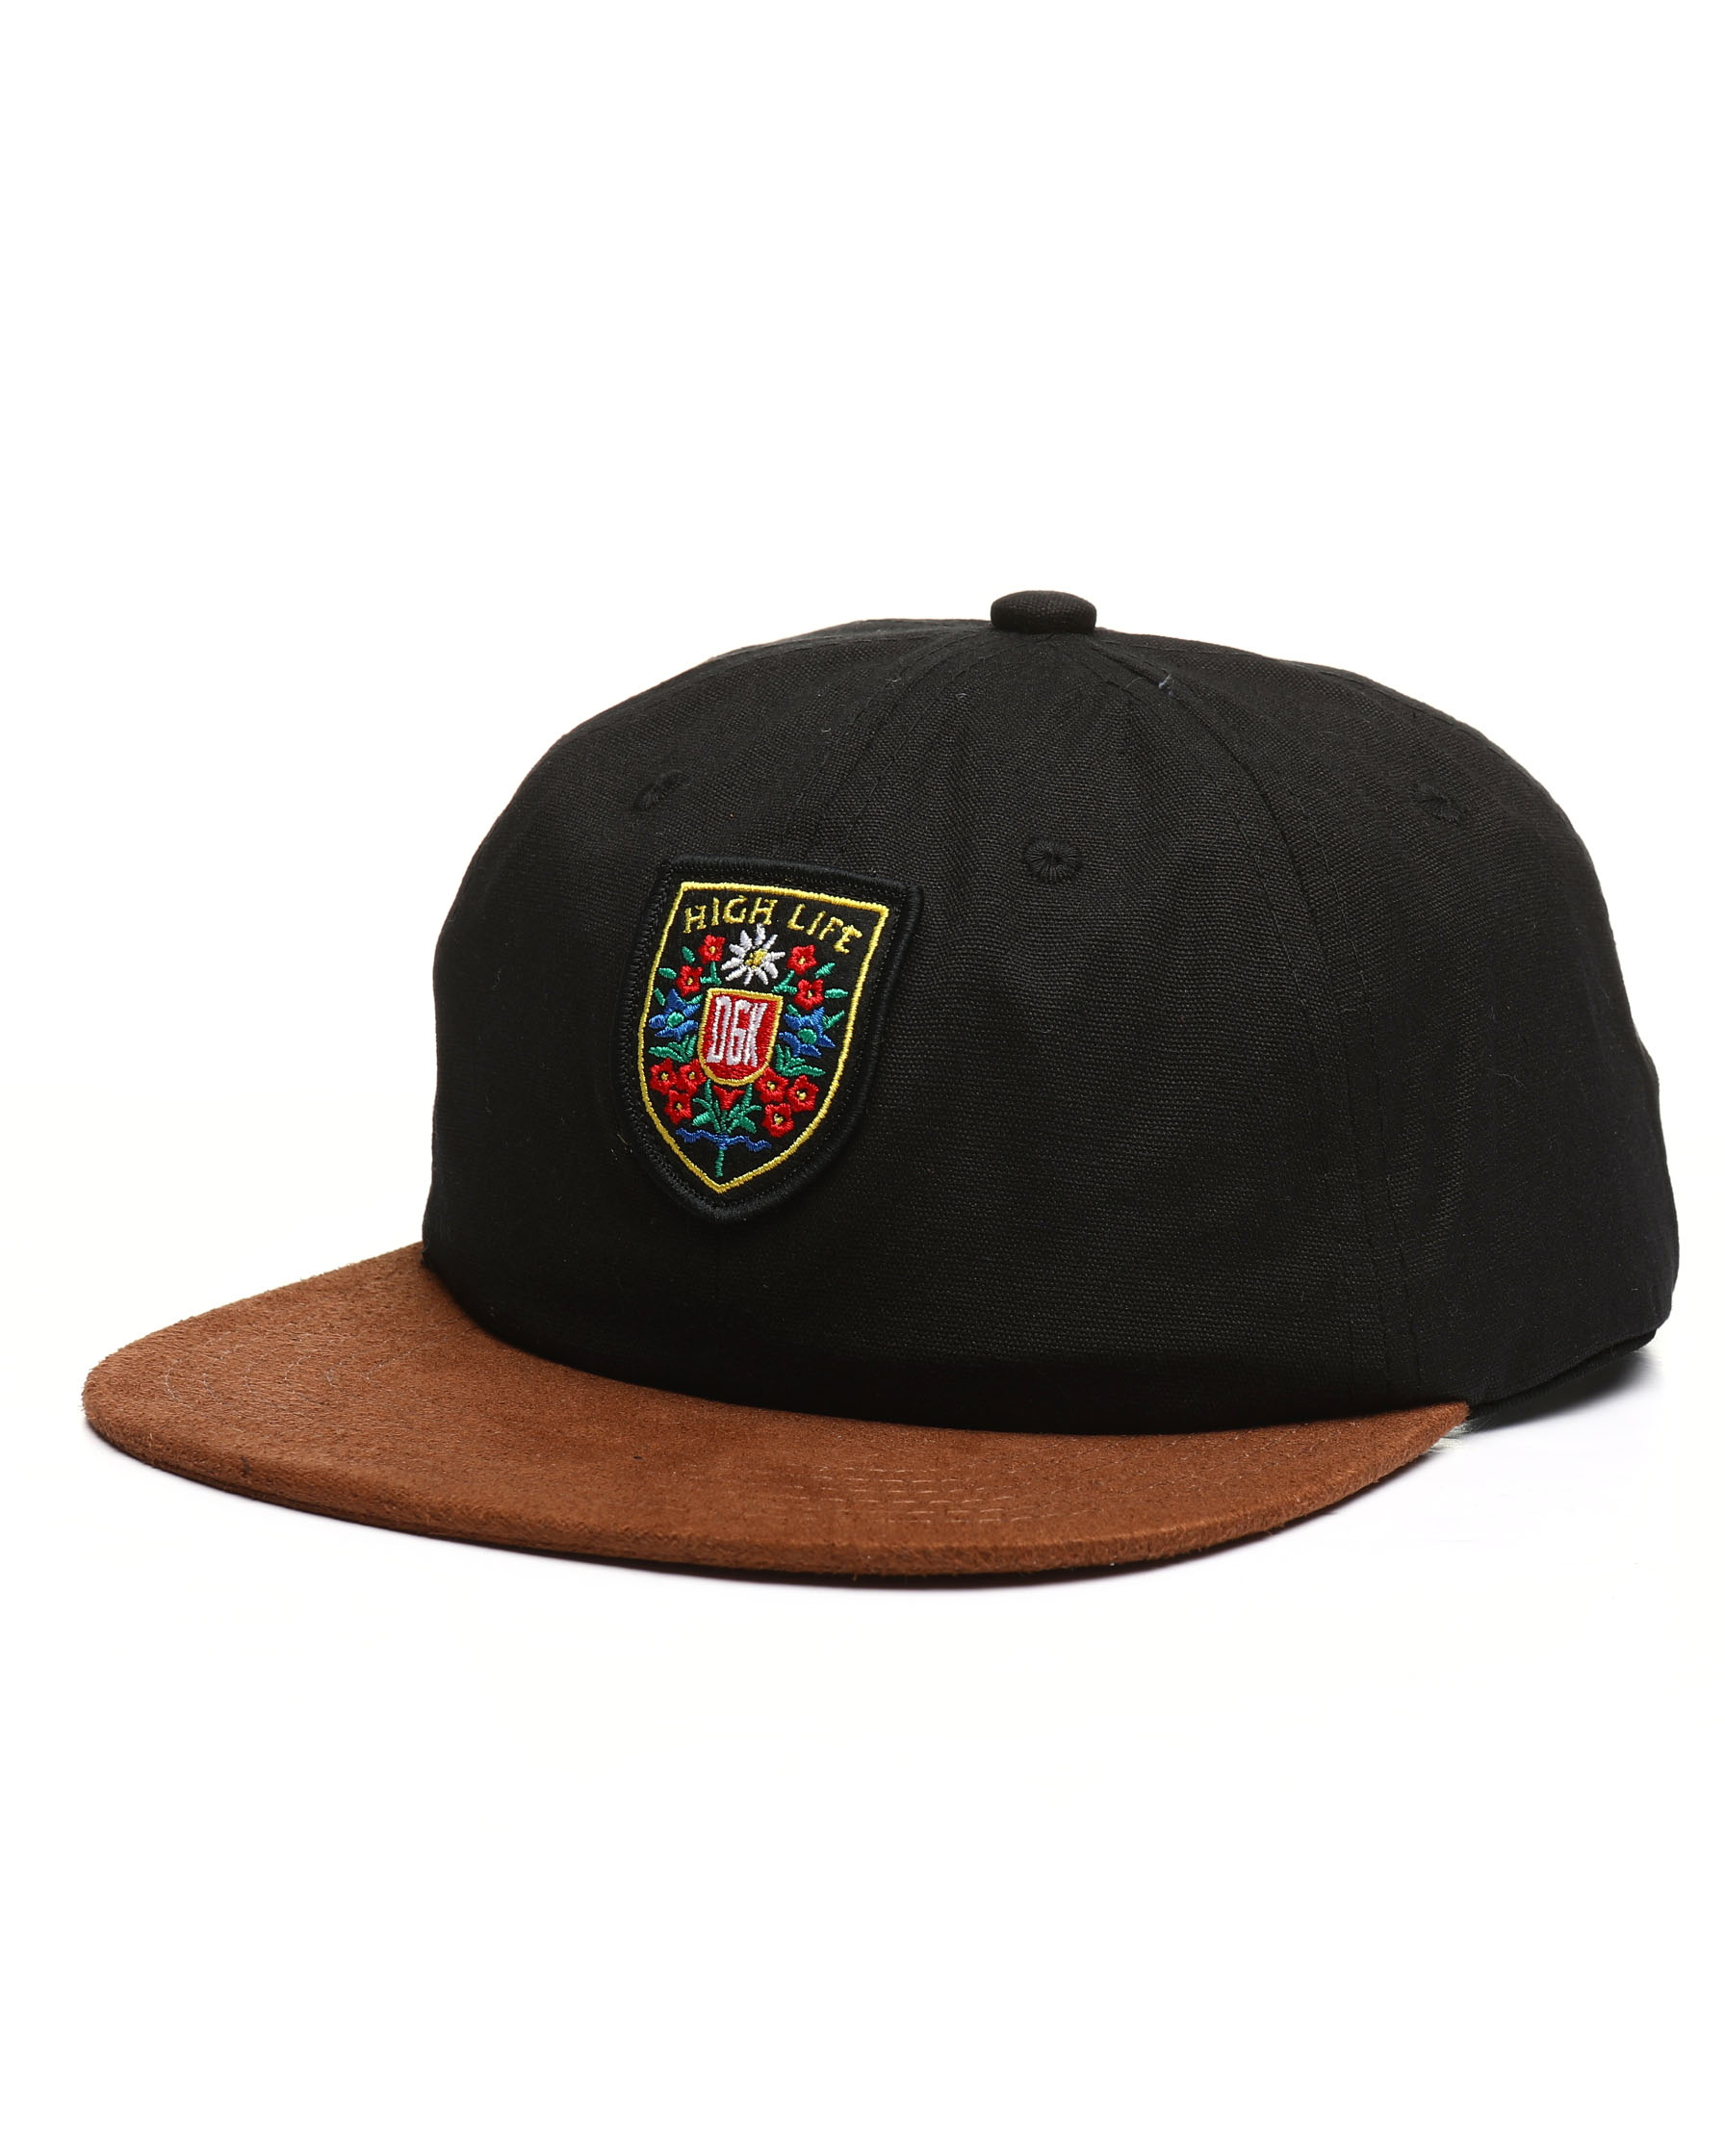 921266d6 Buy High Life Strapback Hat Men's Hats from DGK. Find DGK fashion ...